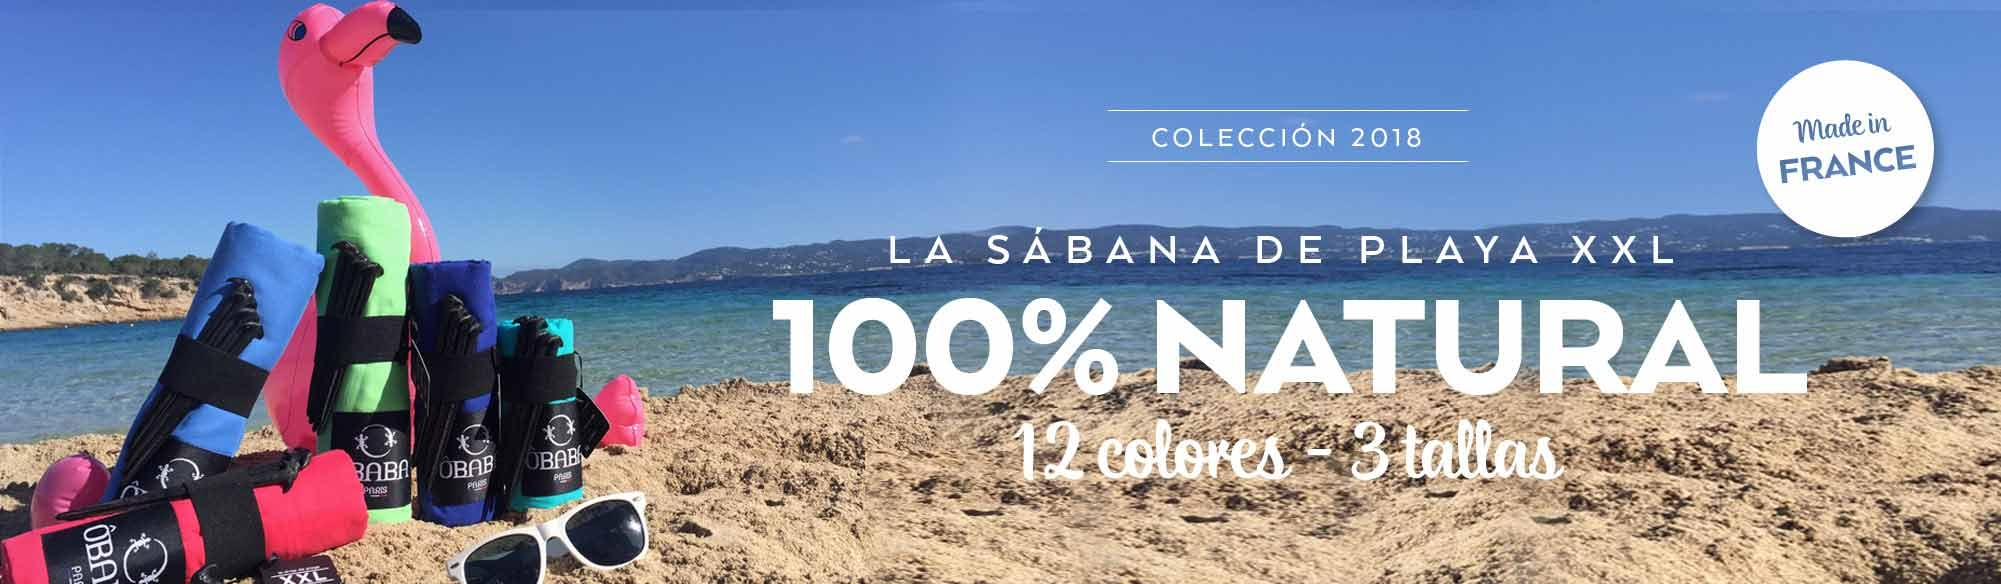 La sabana de playa 100% natural